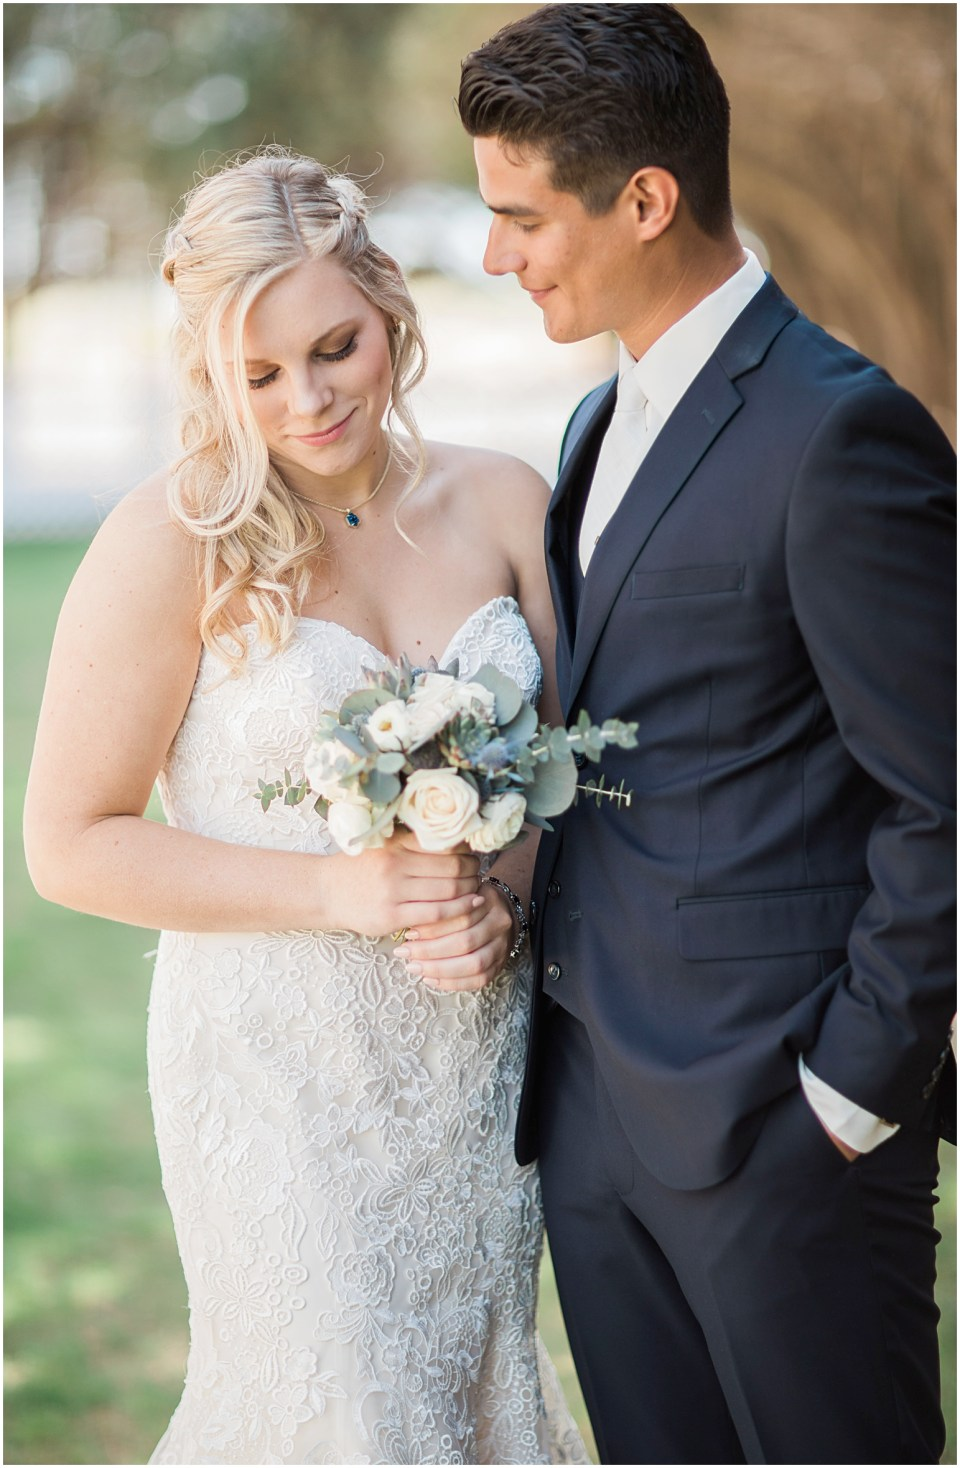 Tucson DIY Backyard Wedding Bride and Groom Photo